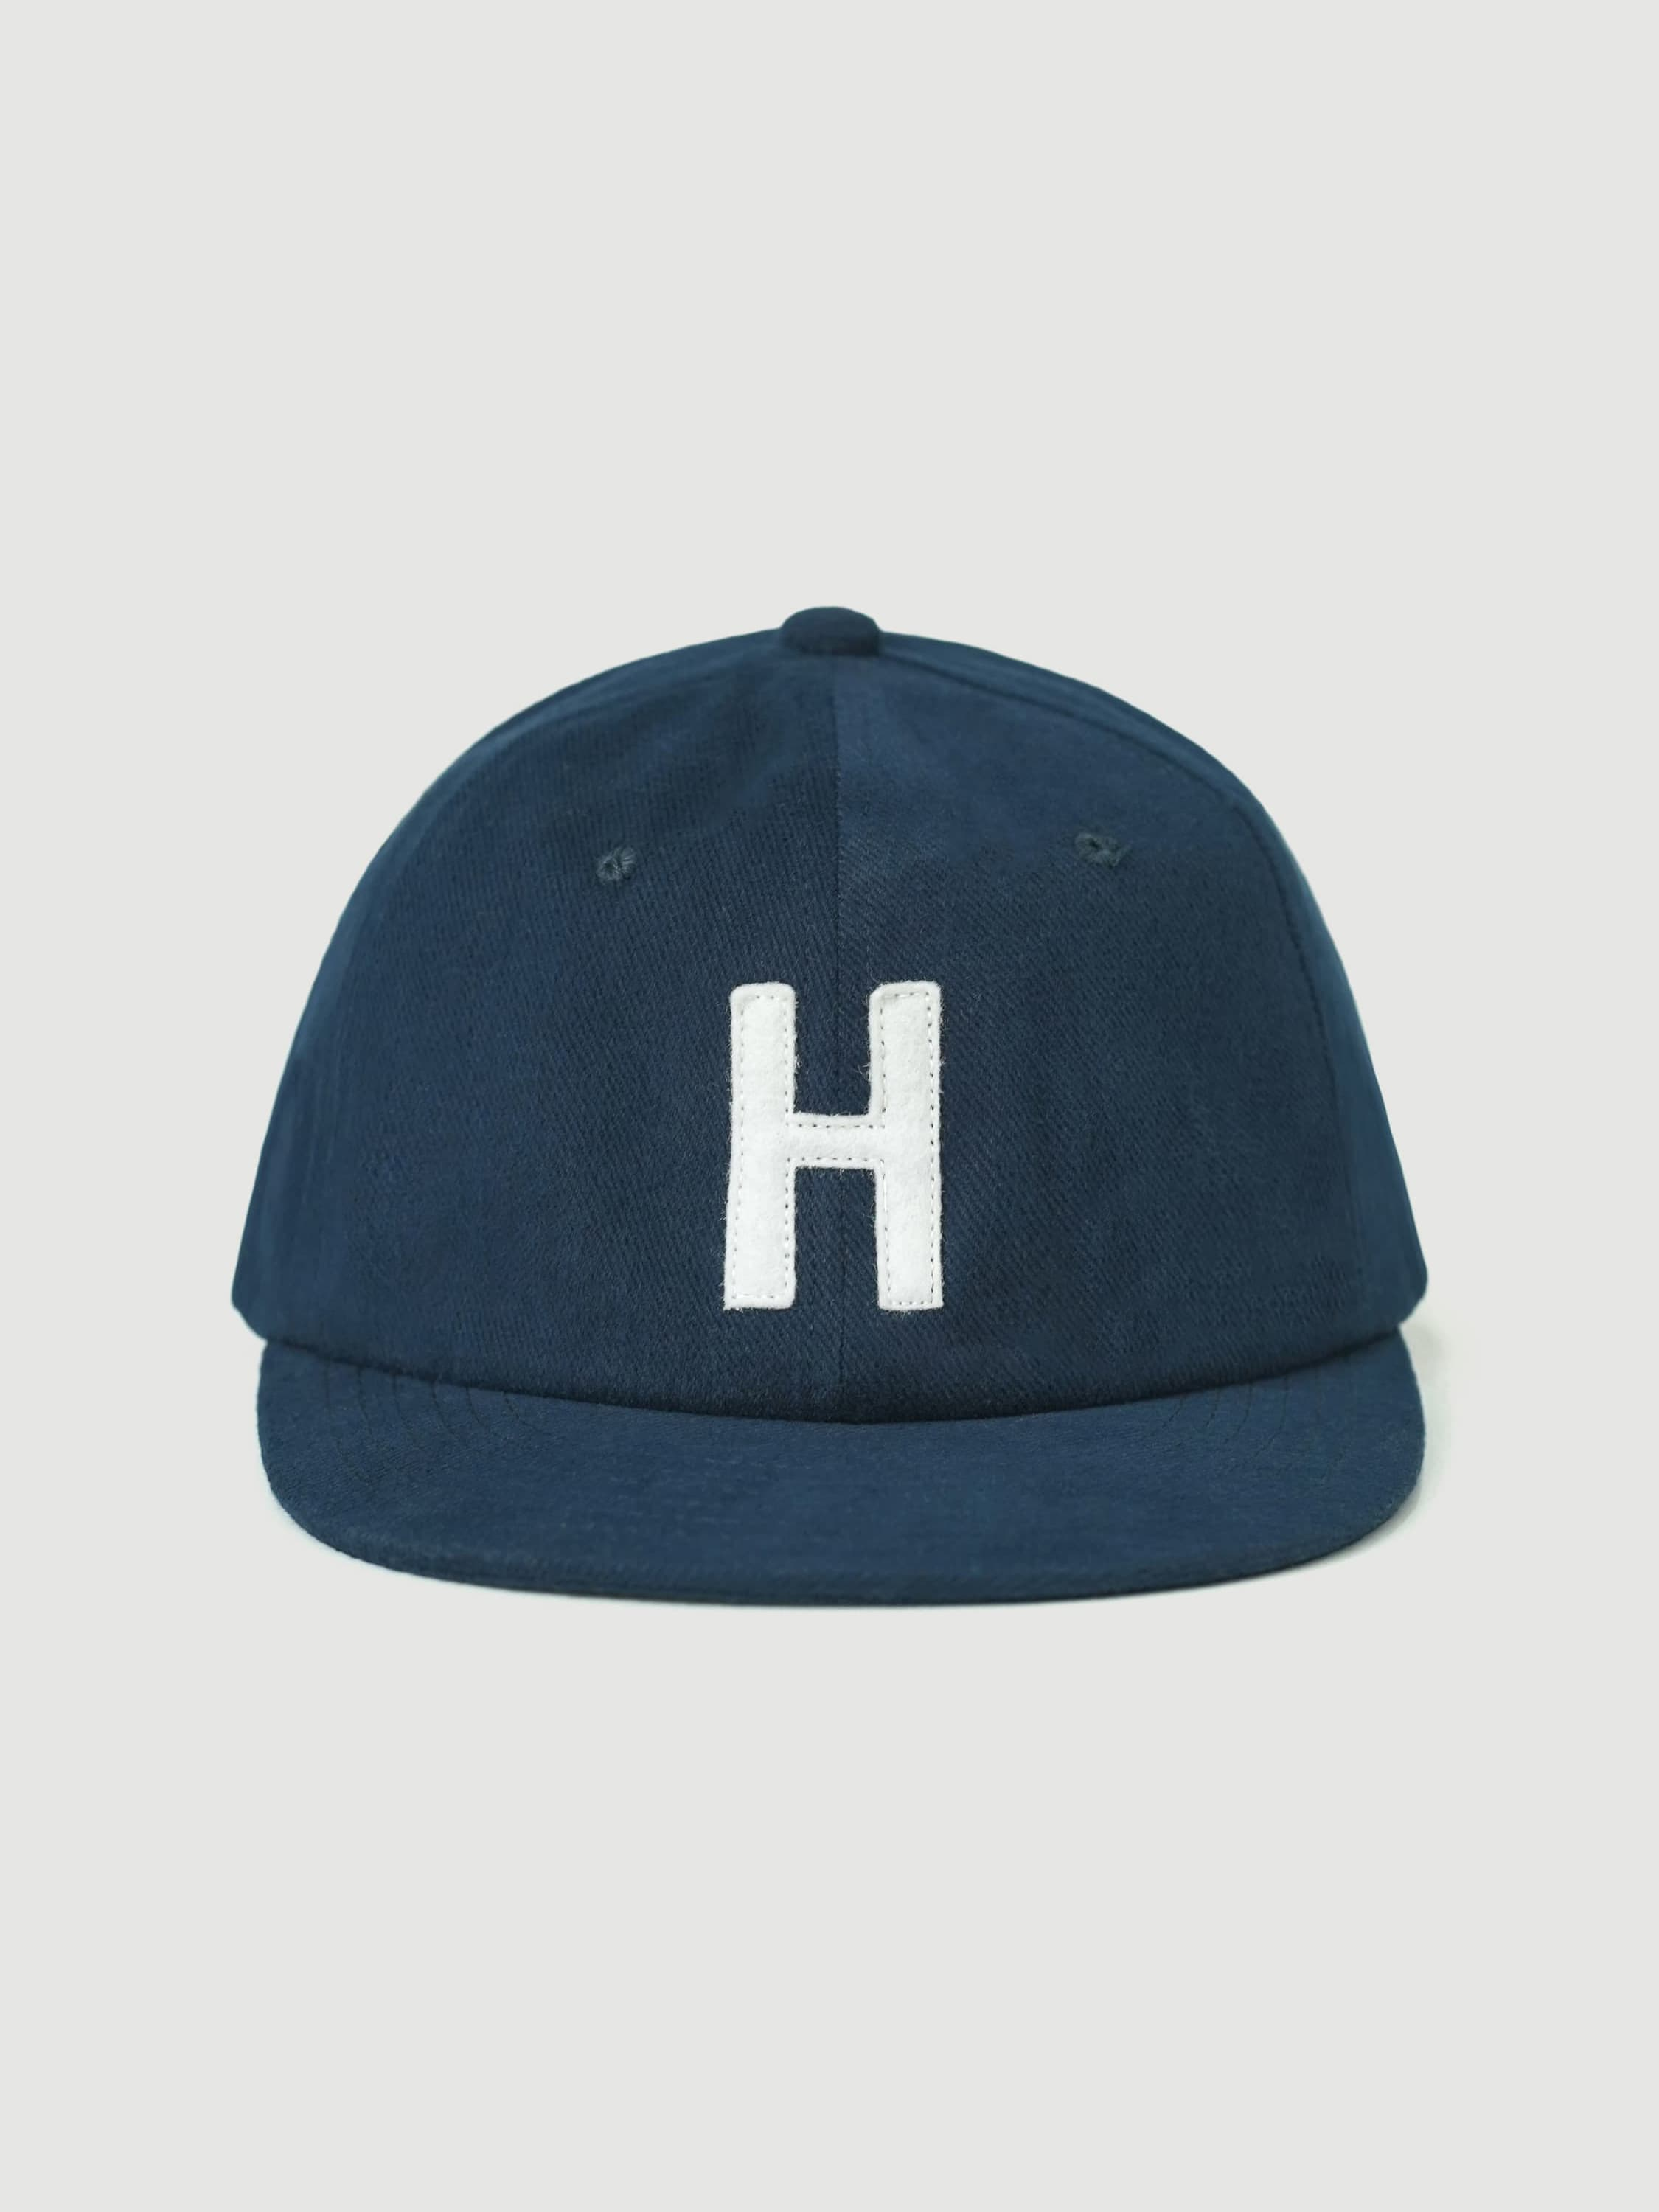 Washed Navy Caps